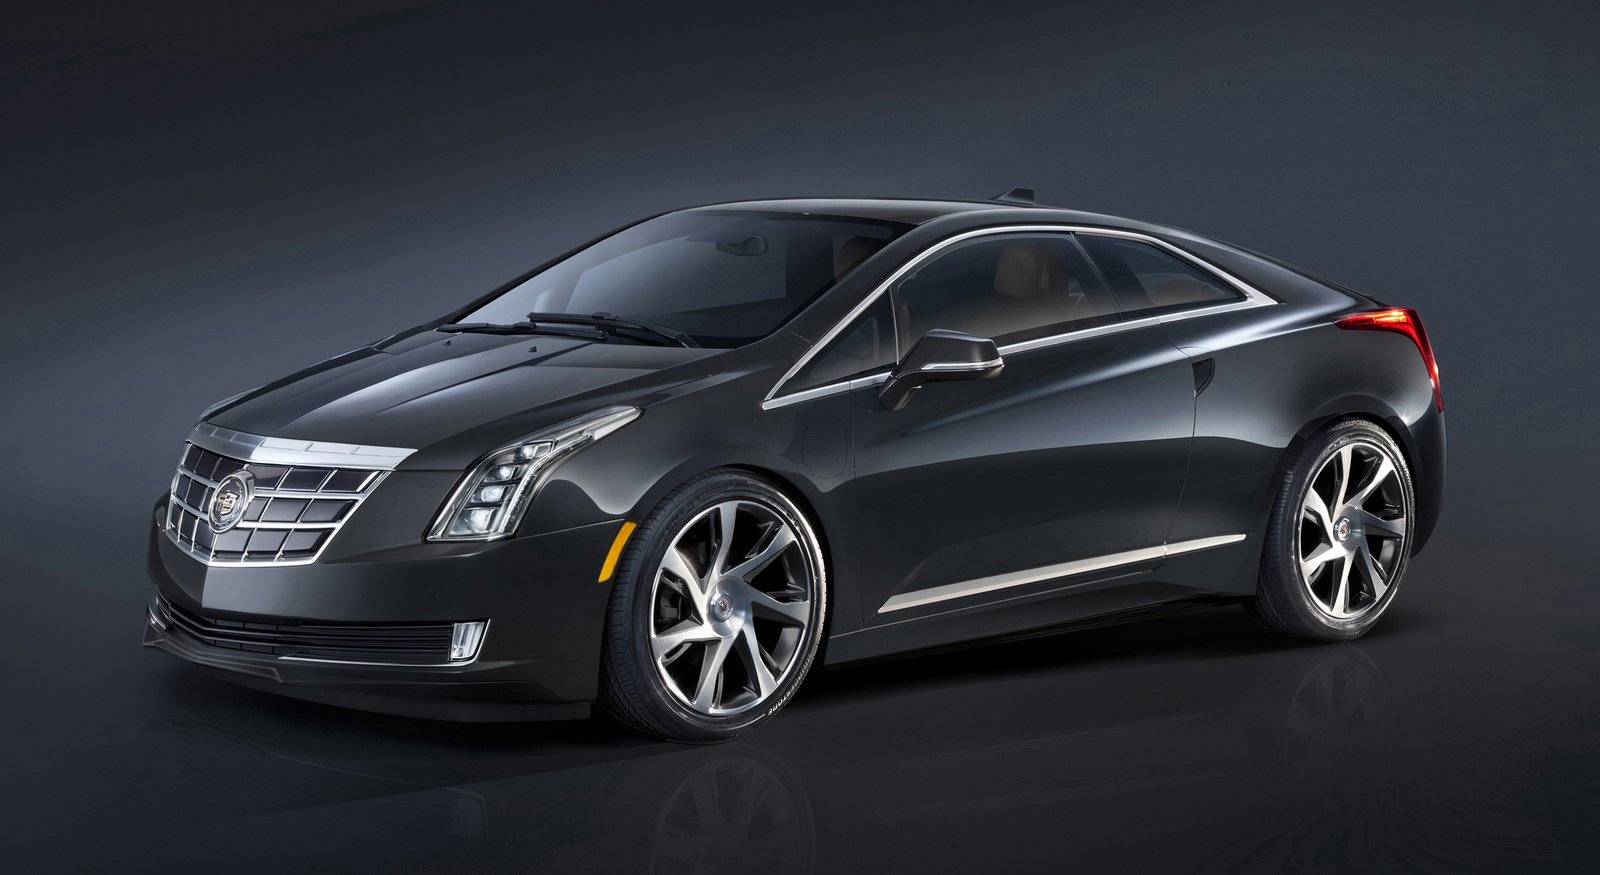 ELR  by Cadillac  Price to be determined  cadillac.com  Cadillac recently announced that a extended-range electric vehicle will arrive in showrooms in early 2014. The car features an on-board, gas-powered range-extending generator helping the car to achieve an estimated driving distance of 300 miles.  More Urban Cars by Dwell